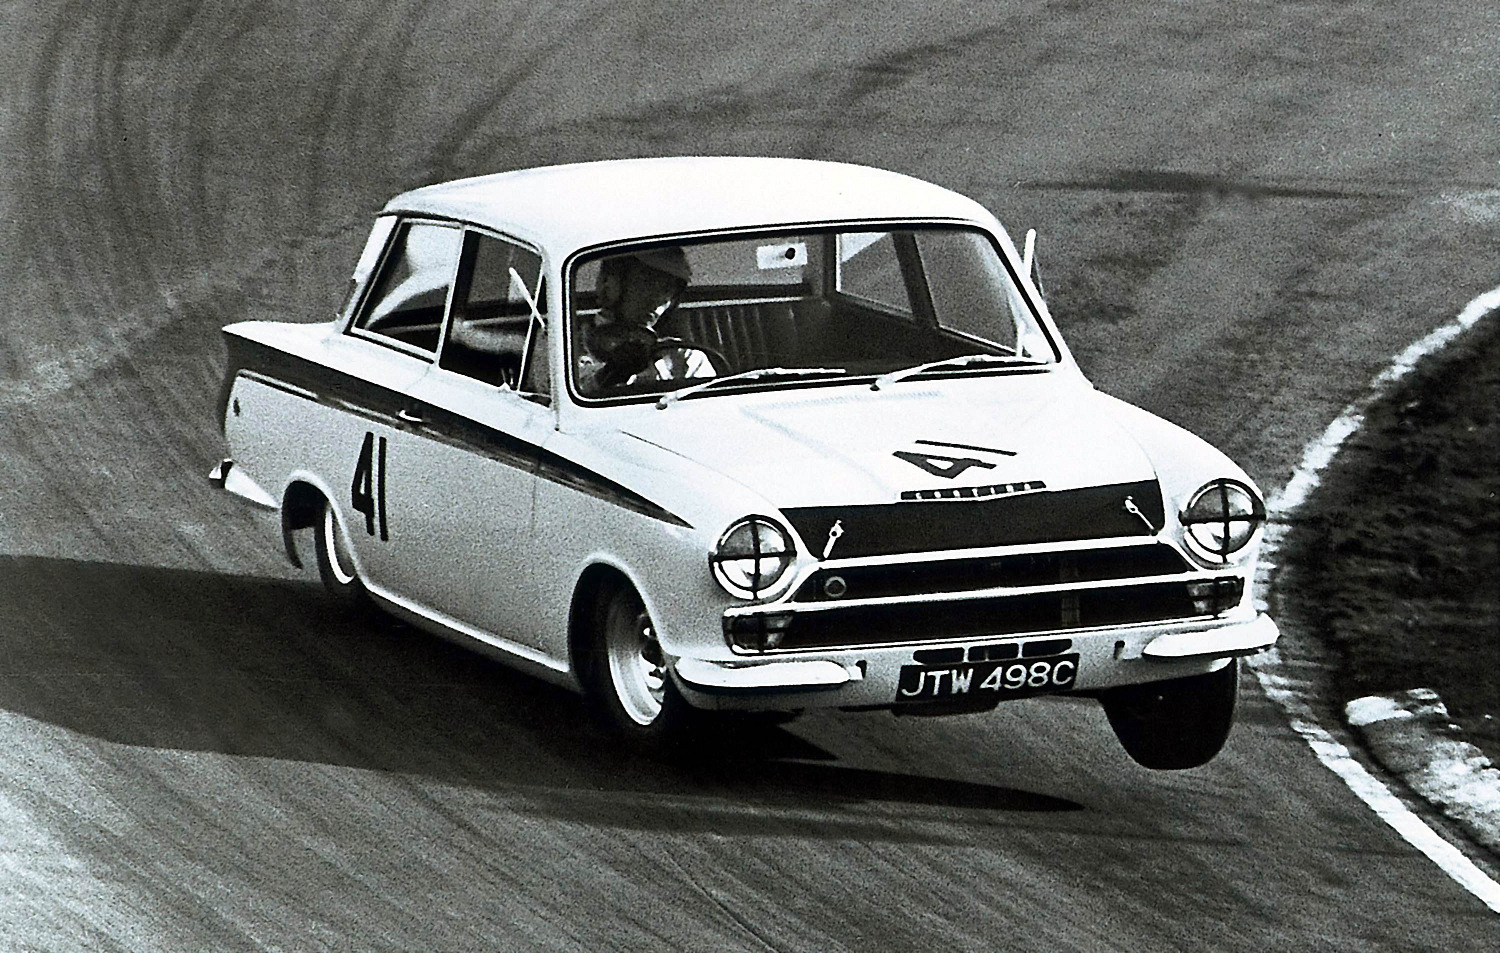 Cortina race to celebrate legendary car's half century at Brands Hatch Lotus Festival